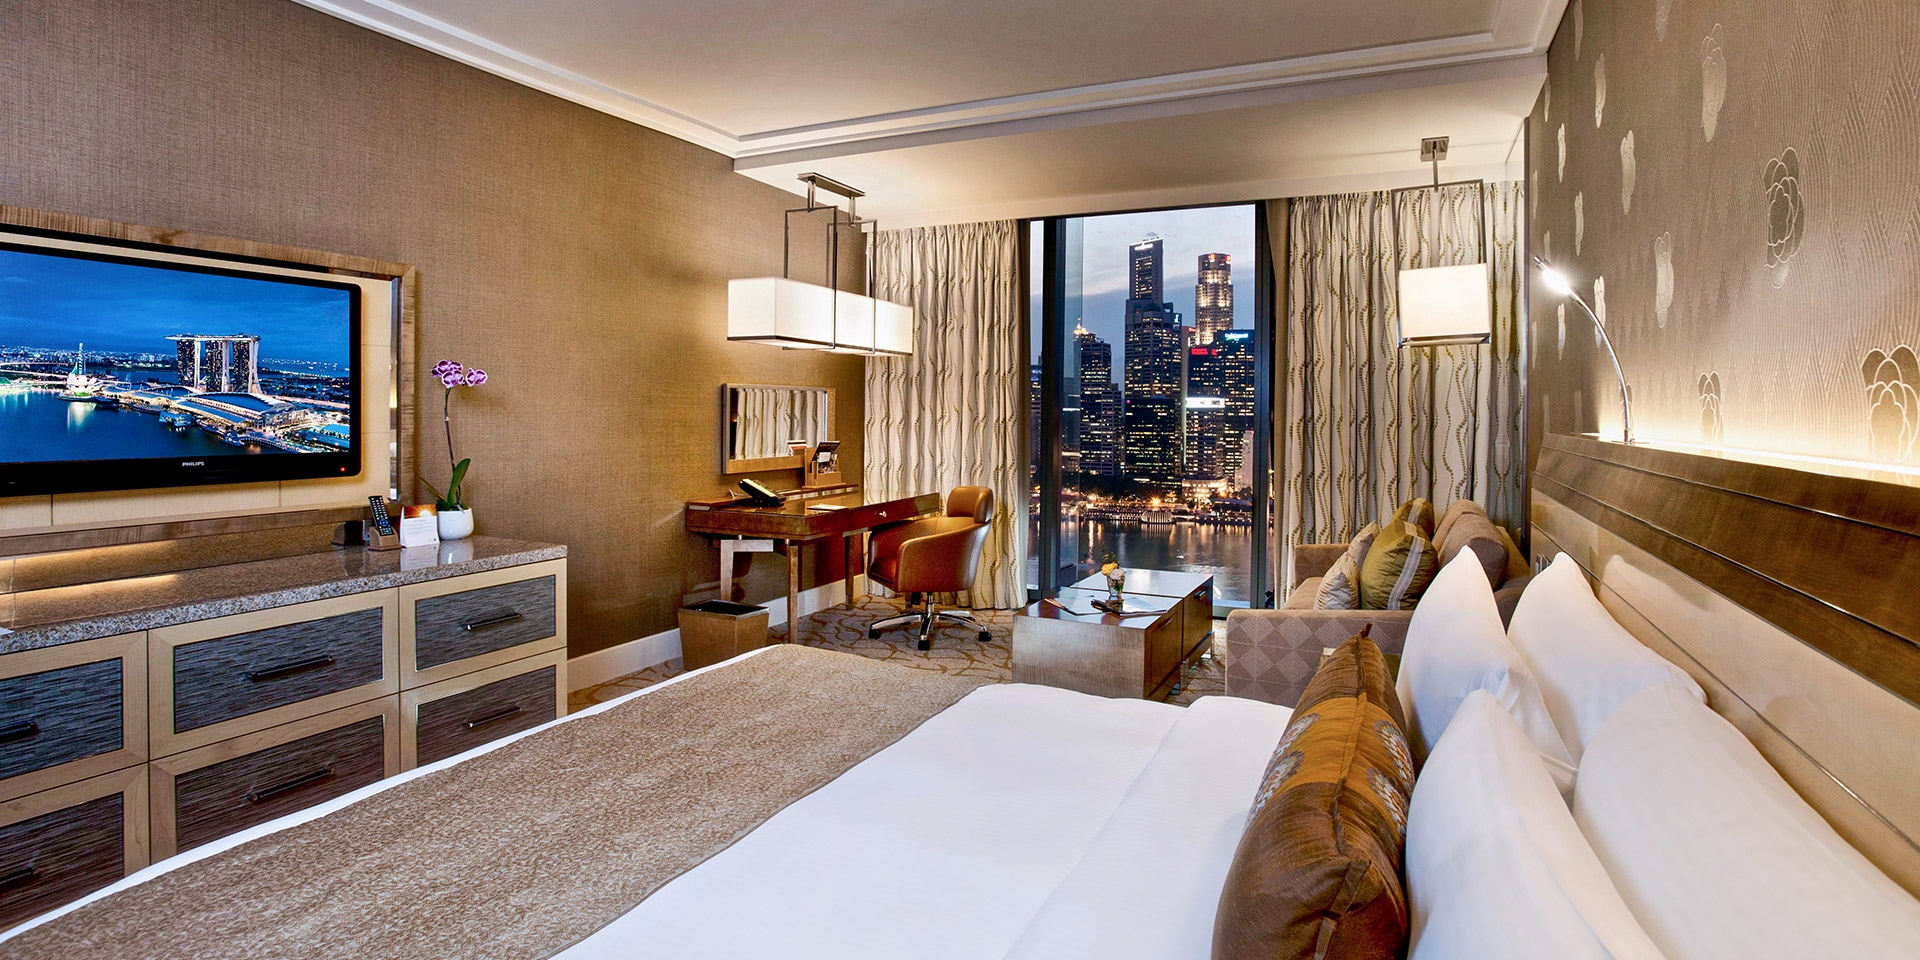 Marina bay sands room rates promotion